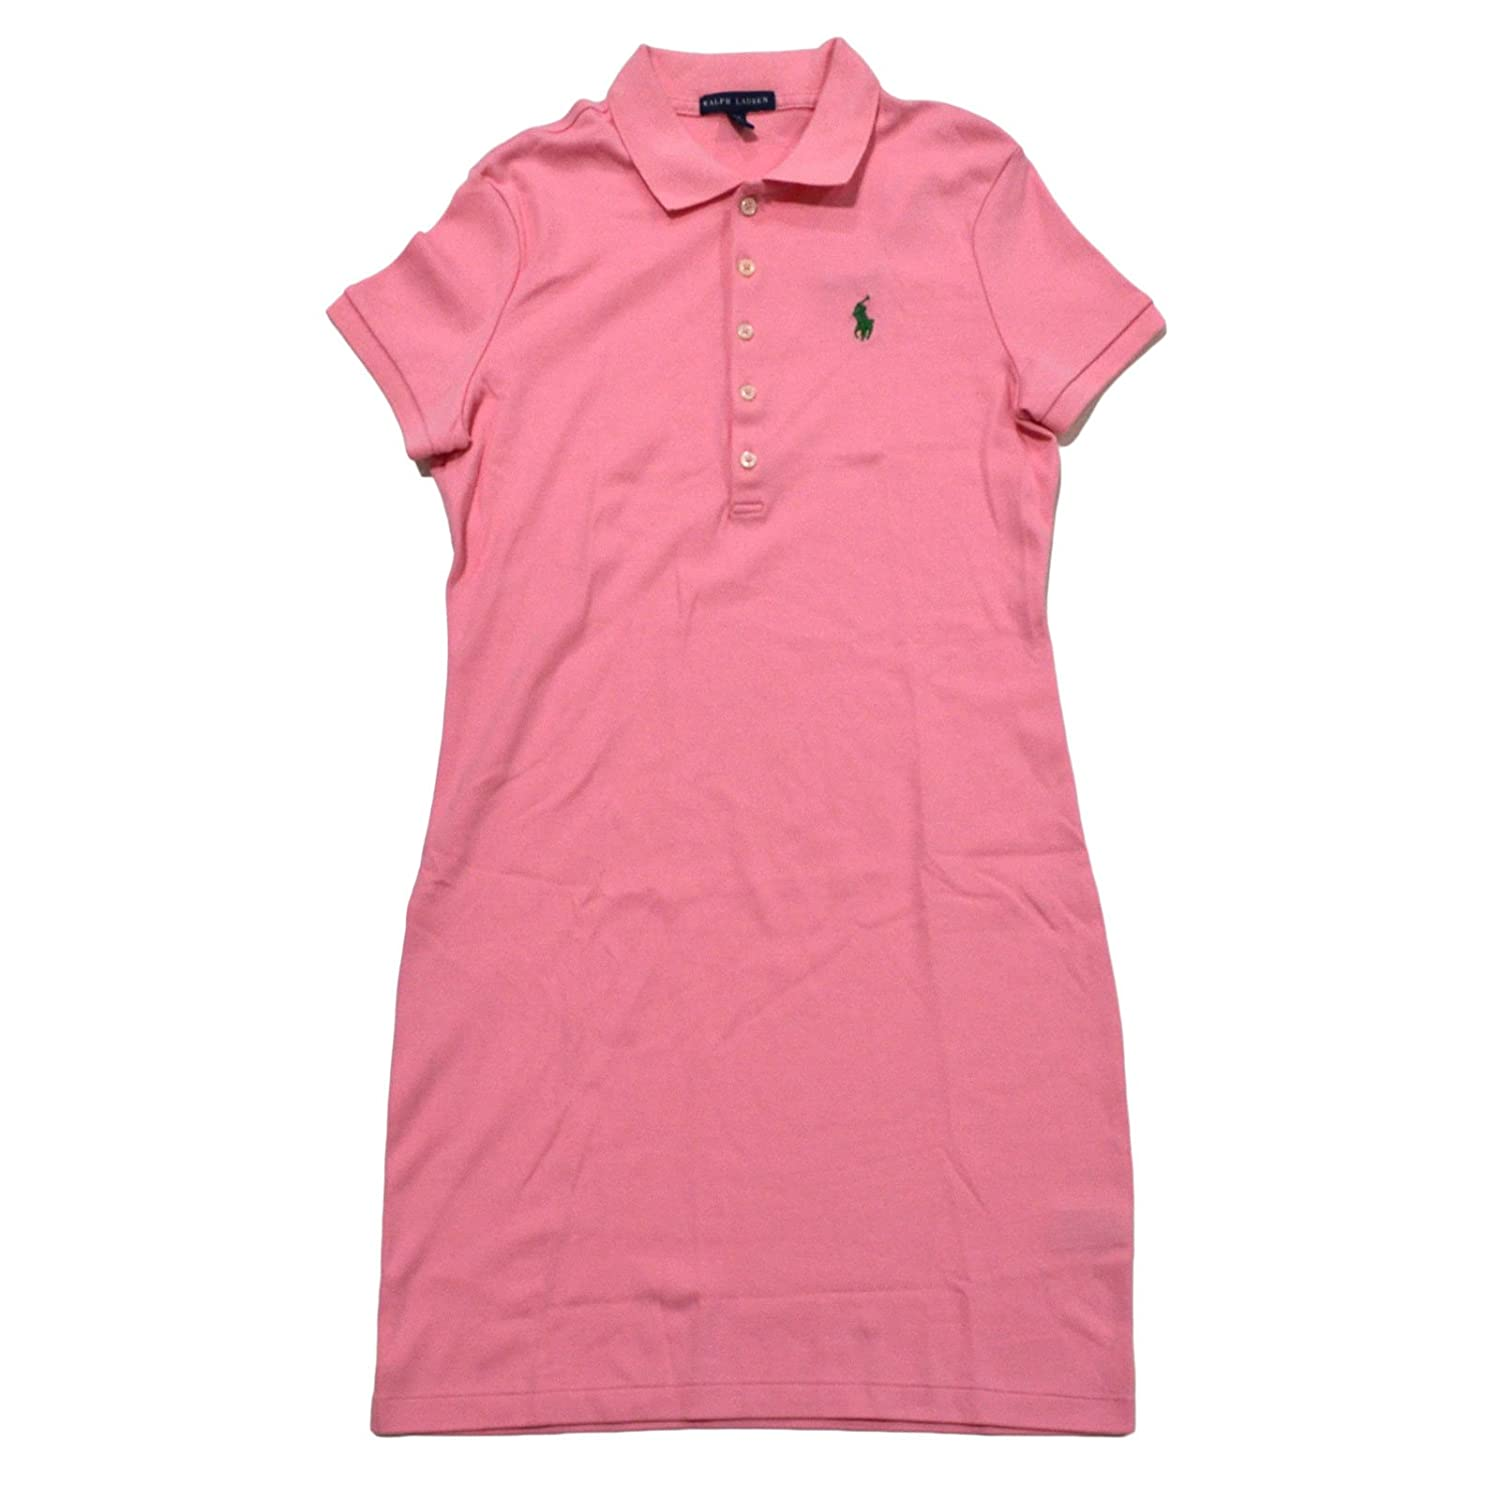 Ralph Lauren Sport Womens Polo Dress with Pony Player Logo at Amazon